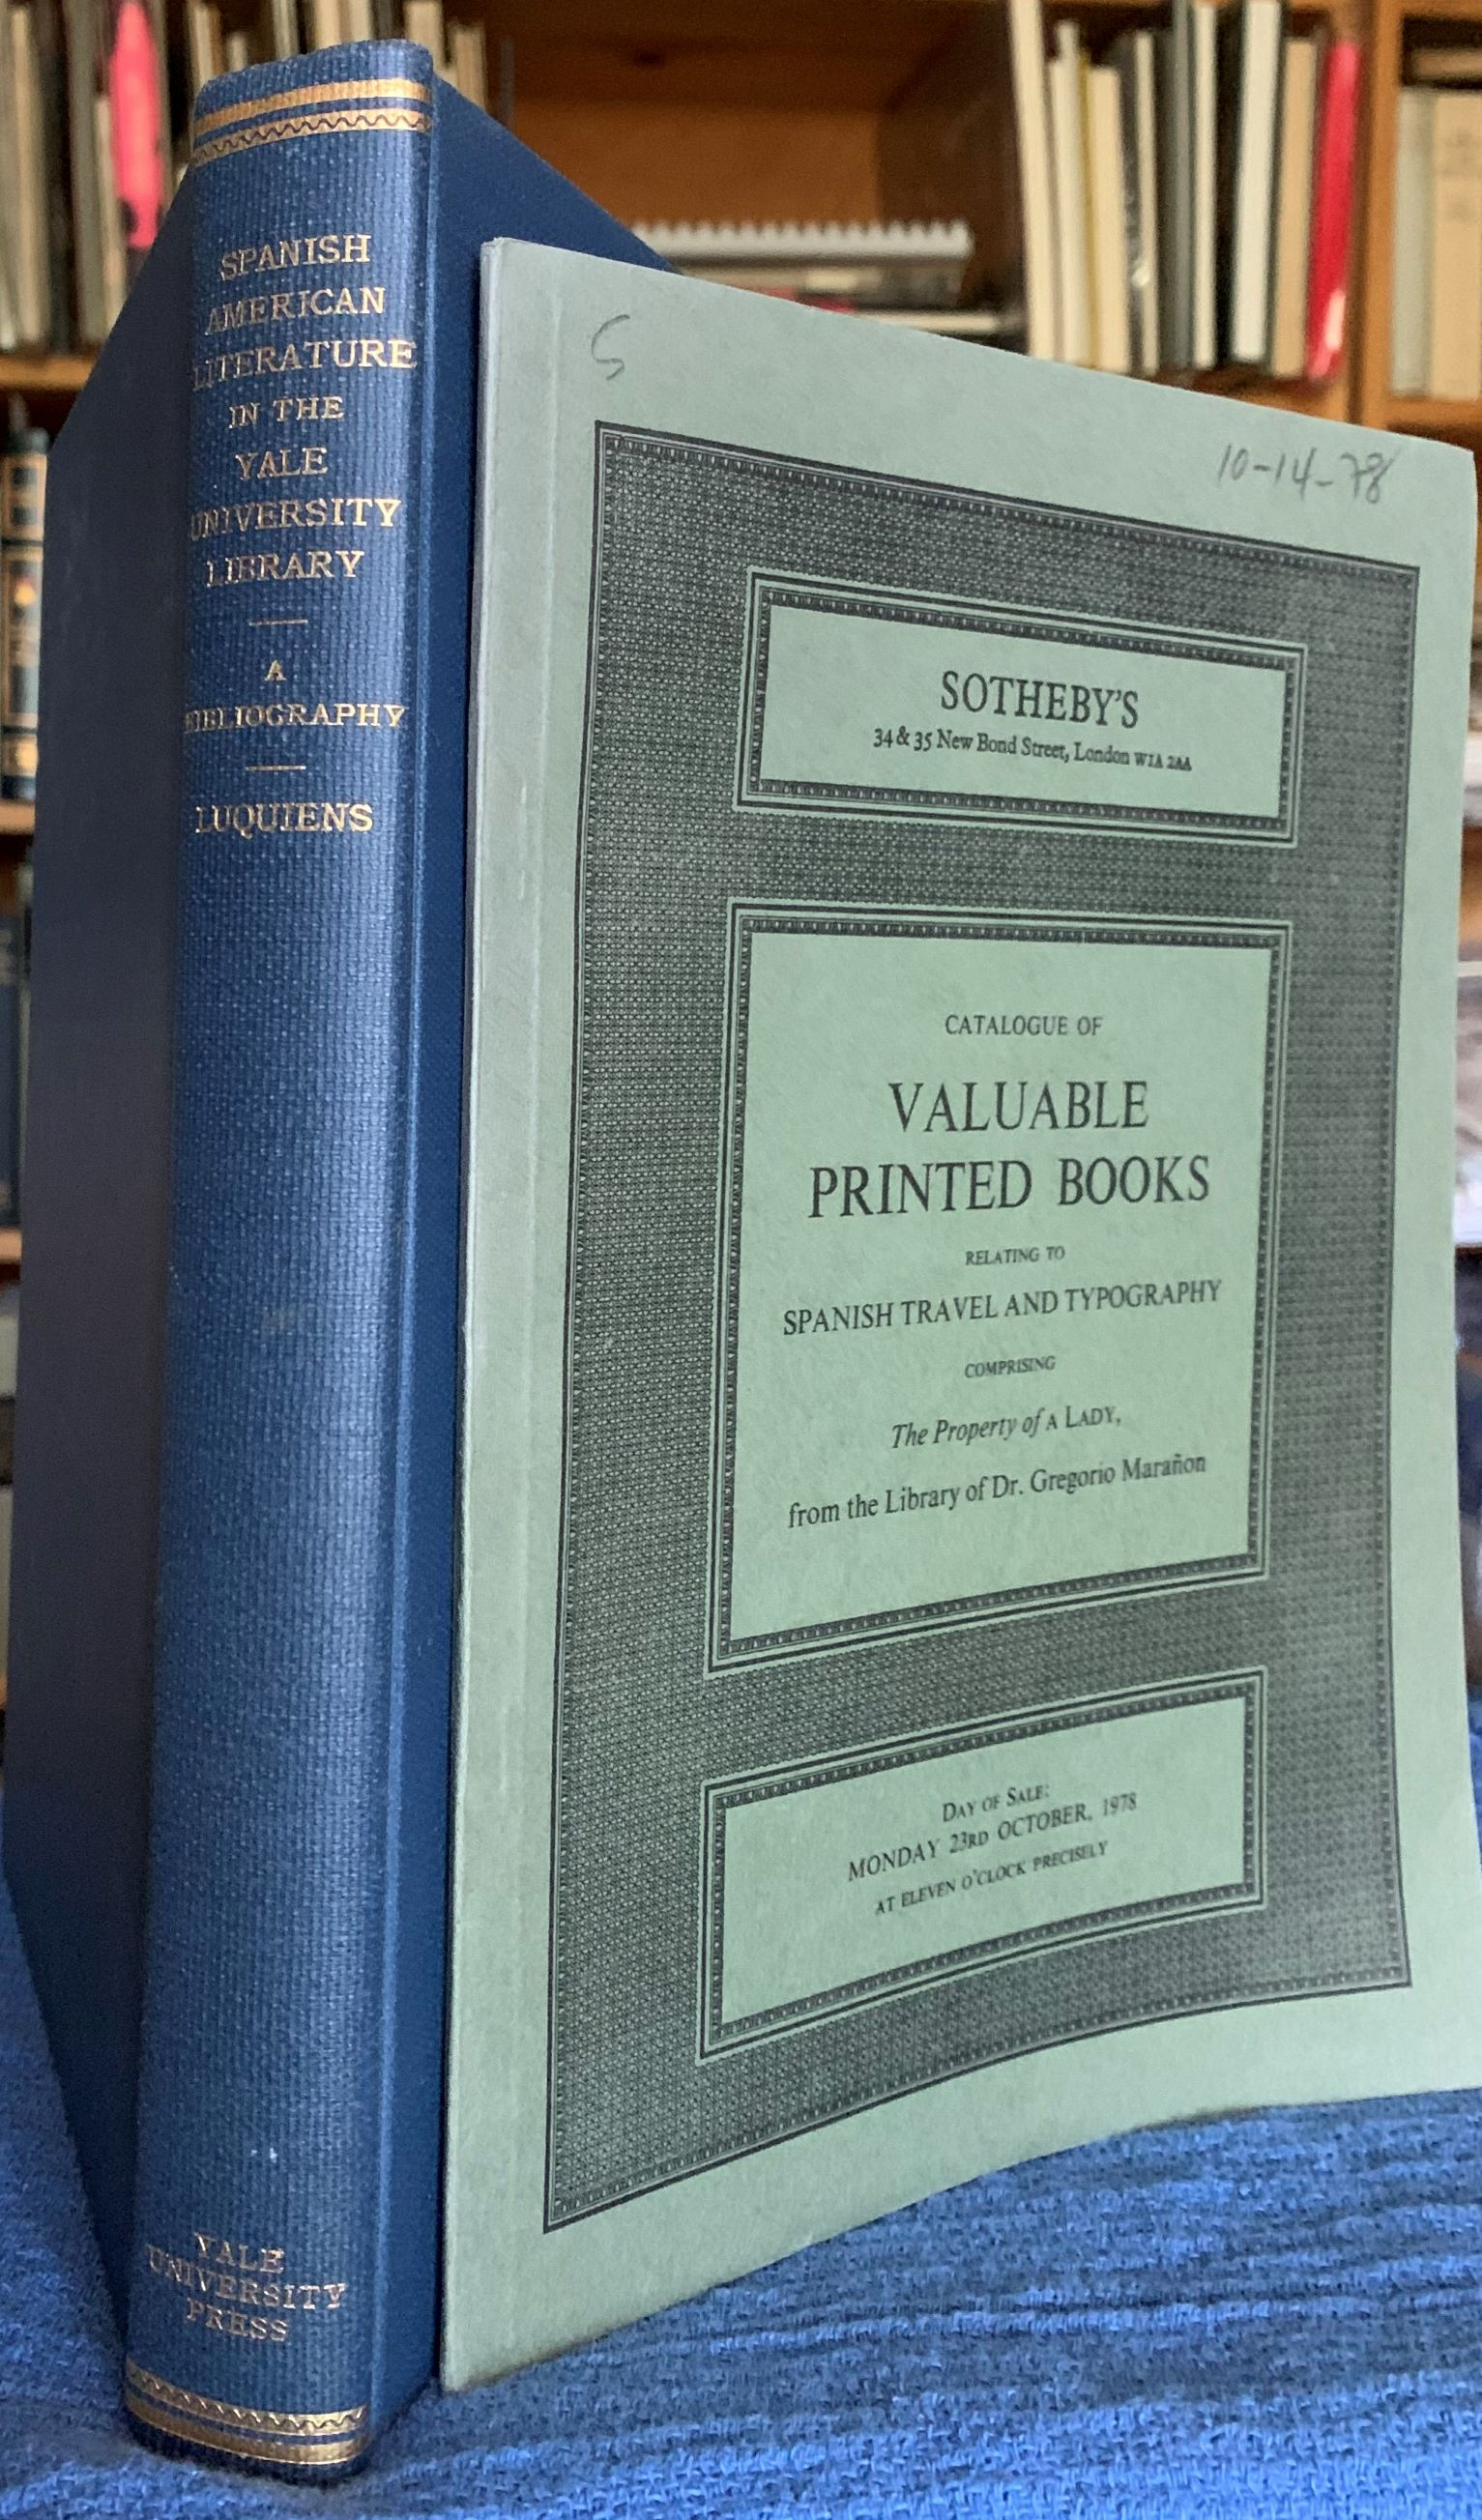 Image for [2 items] Spanish American Literature in the Yale University Library. A Bibliography. [together with] Catalogue of valuable printed books relating to Spanish travel and typography comprising the property of a lady, from the library of Dr. Gregorio Marañon.